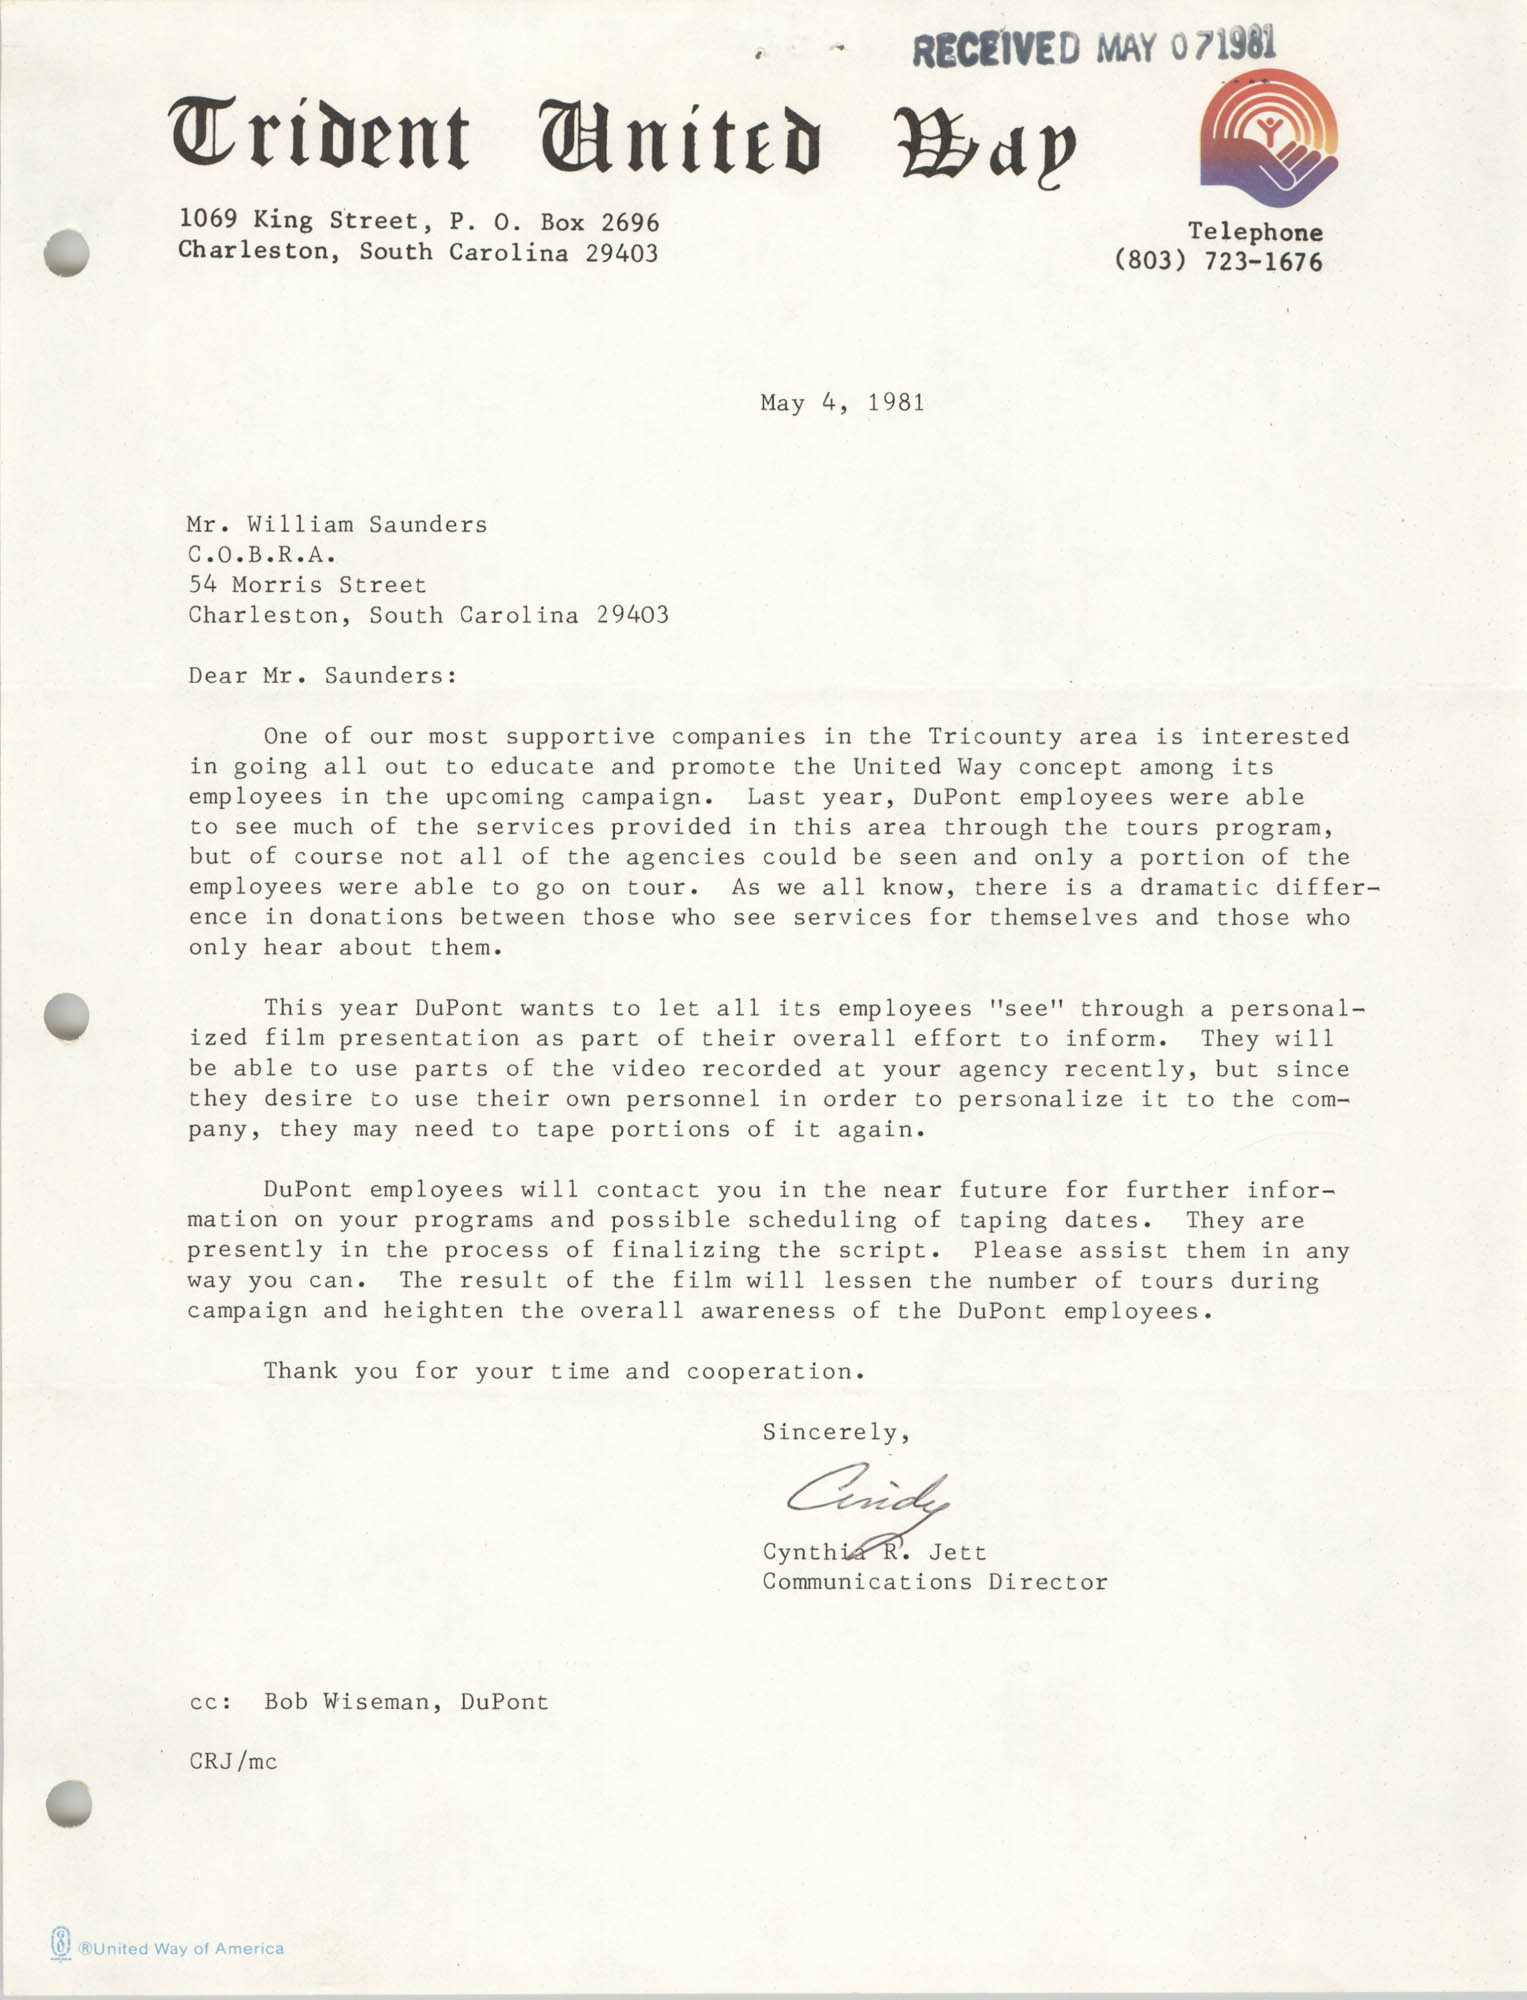 Letter from Cynthia R. Jett to William Saunders, April 20, 1981